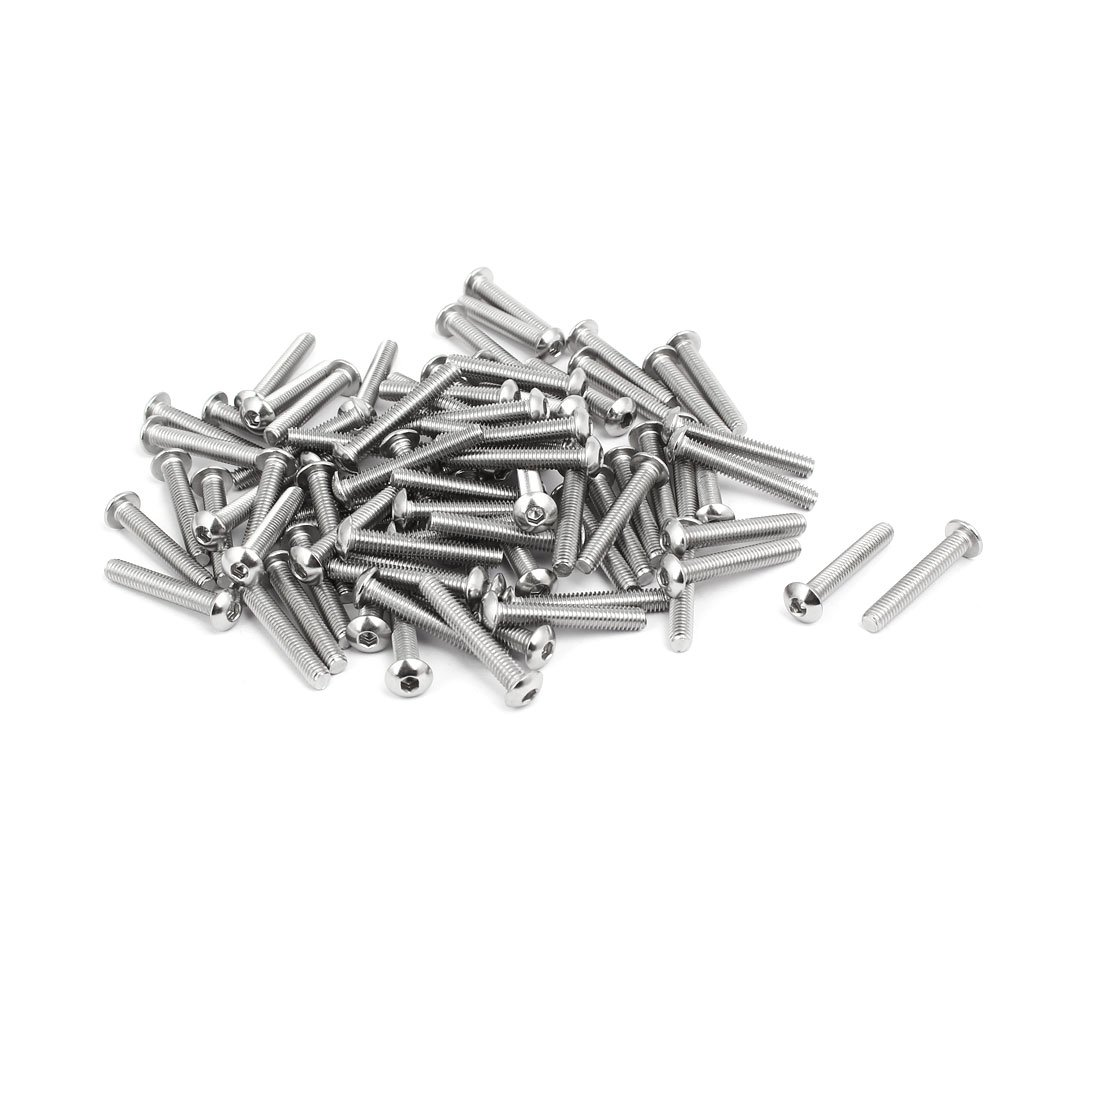 uxcell M4x25mm 304 Stainless Steel Button Head Hex Socket Cap Screws Bolts 80pcs a17022100ux0017